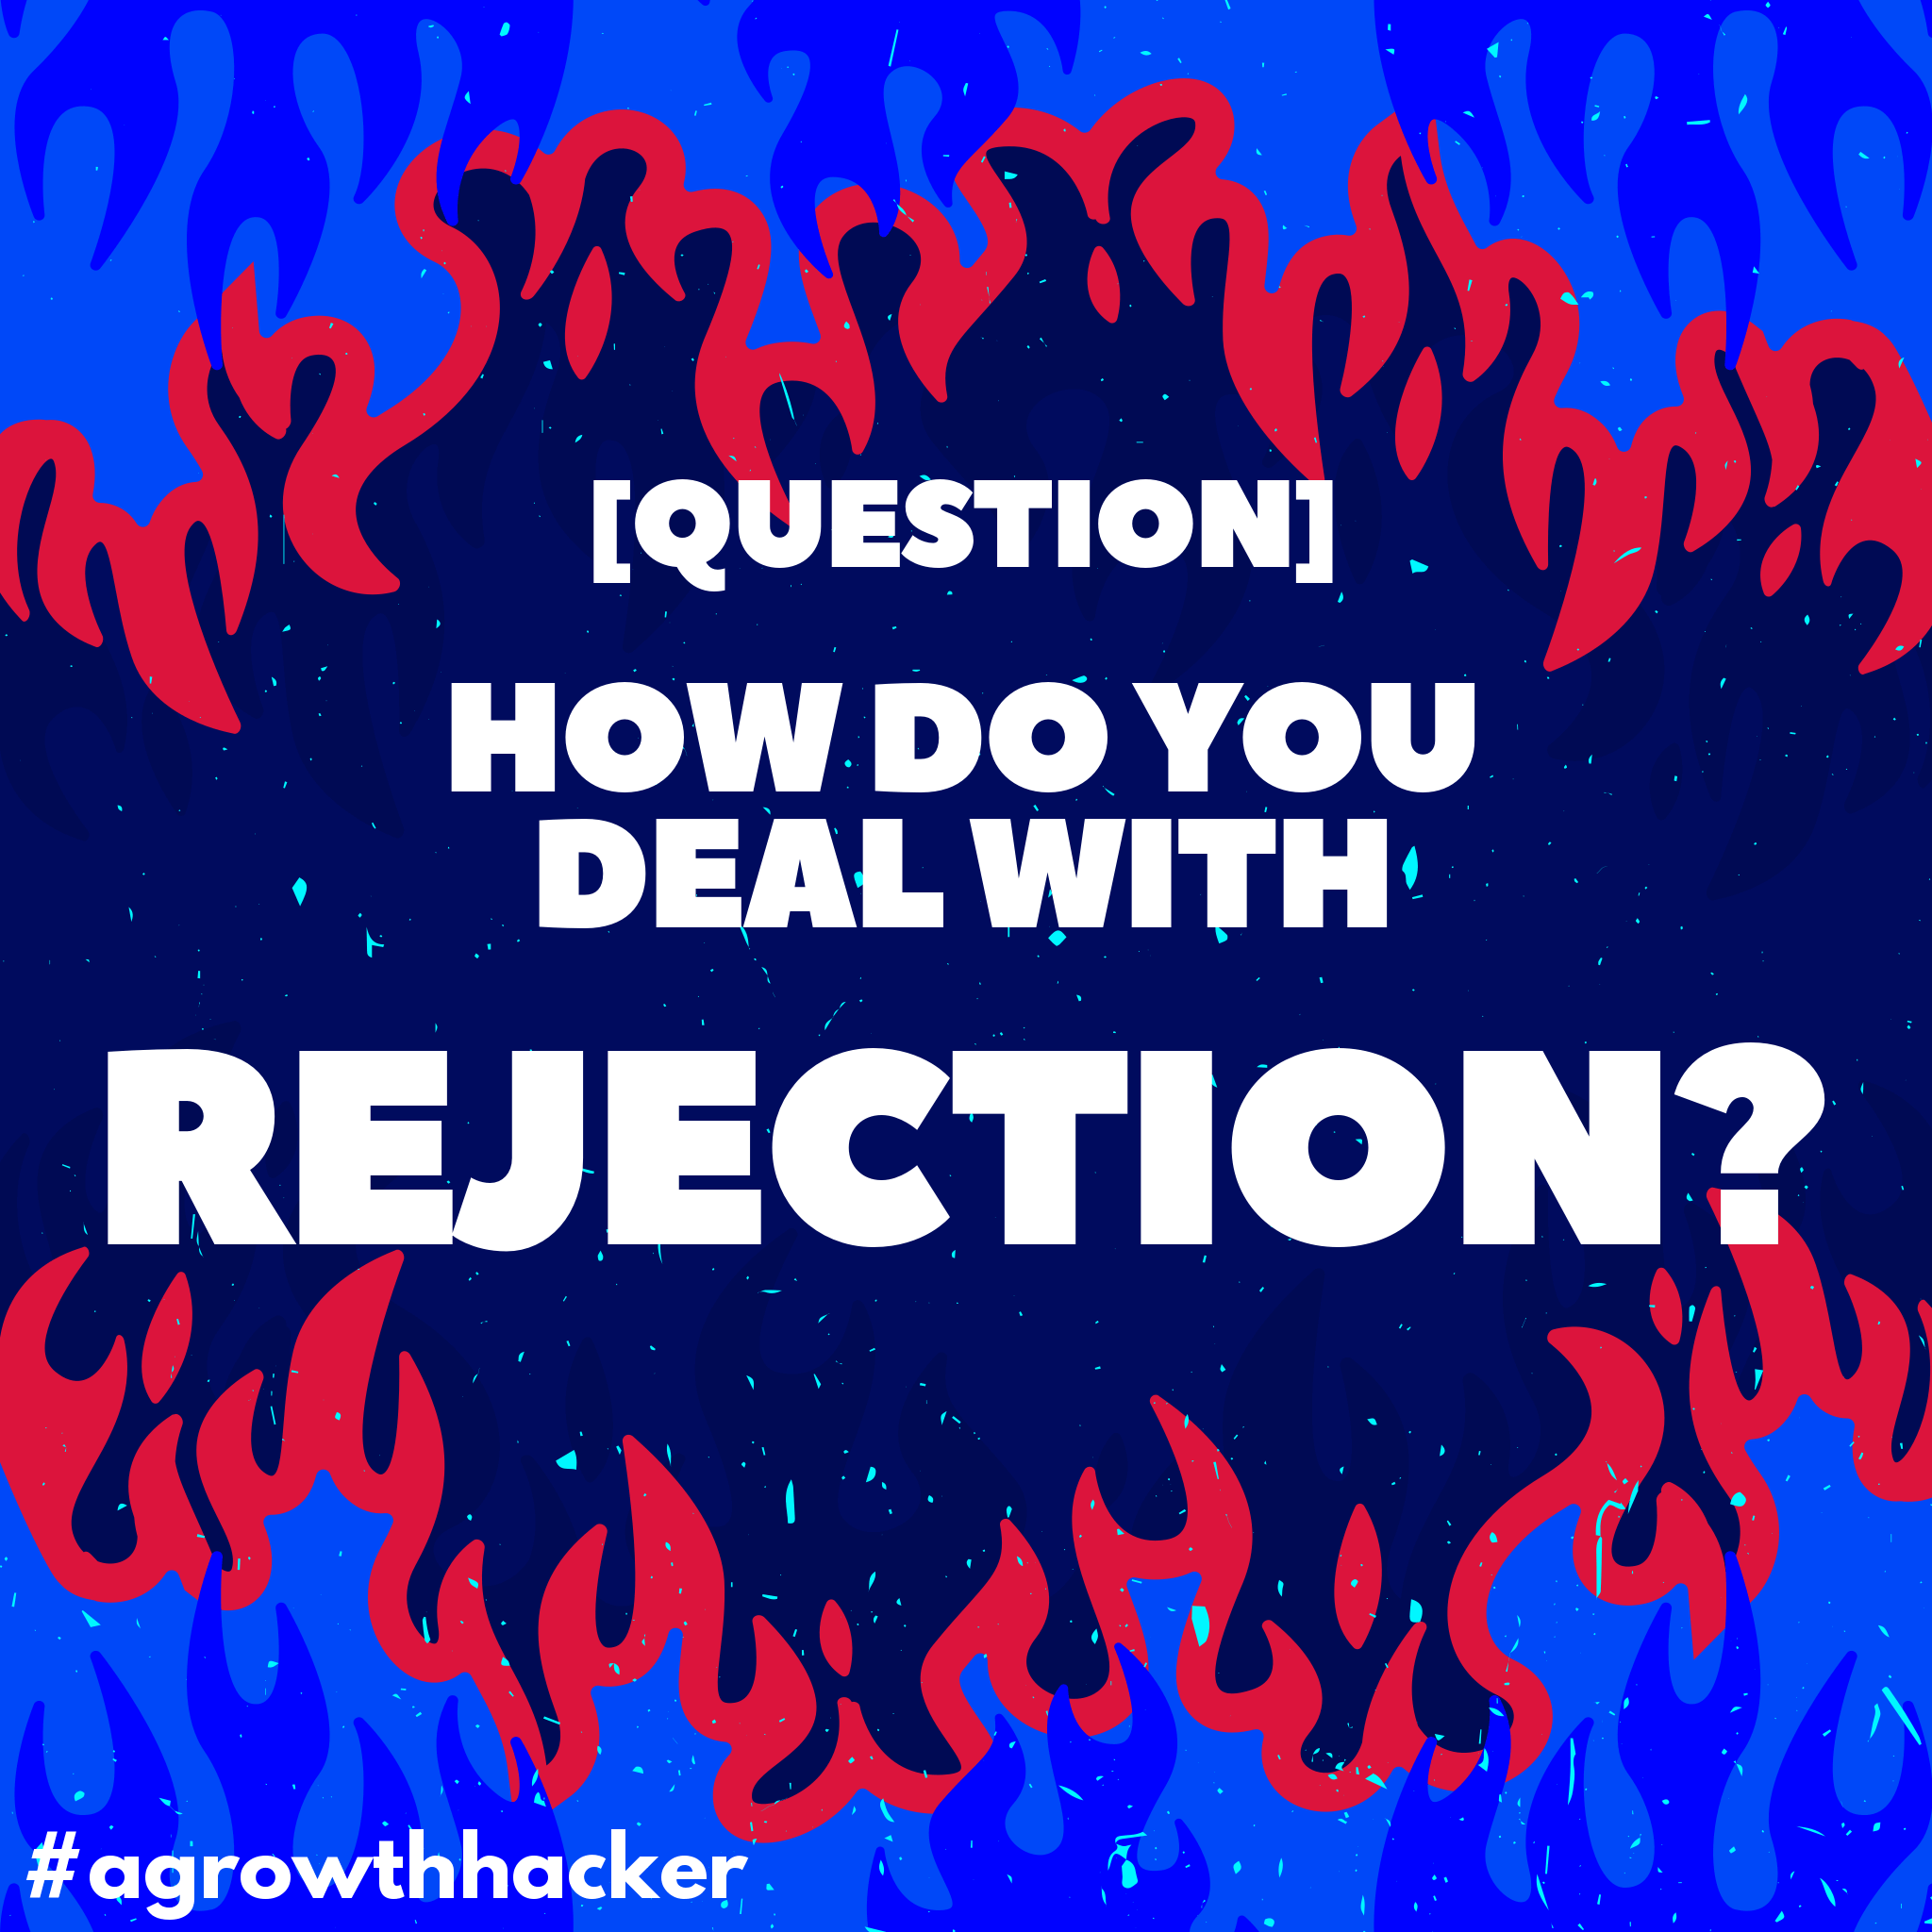 How do you deal with rejection?